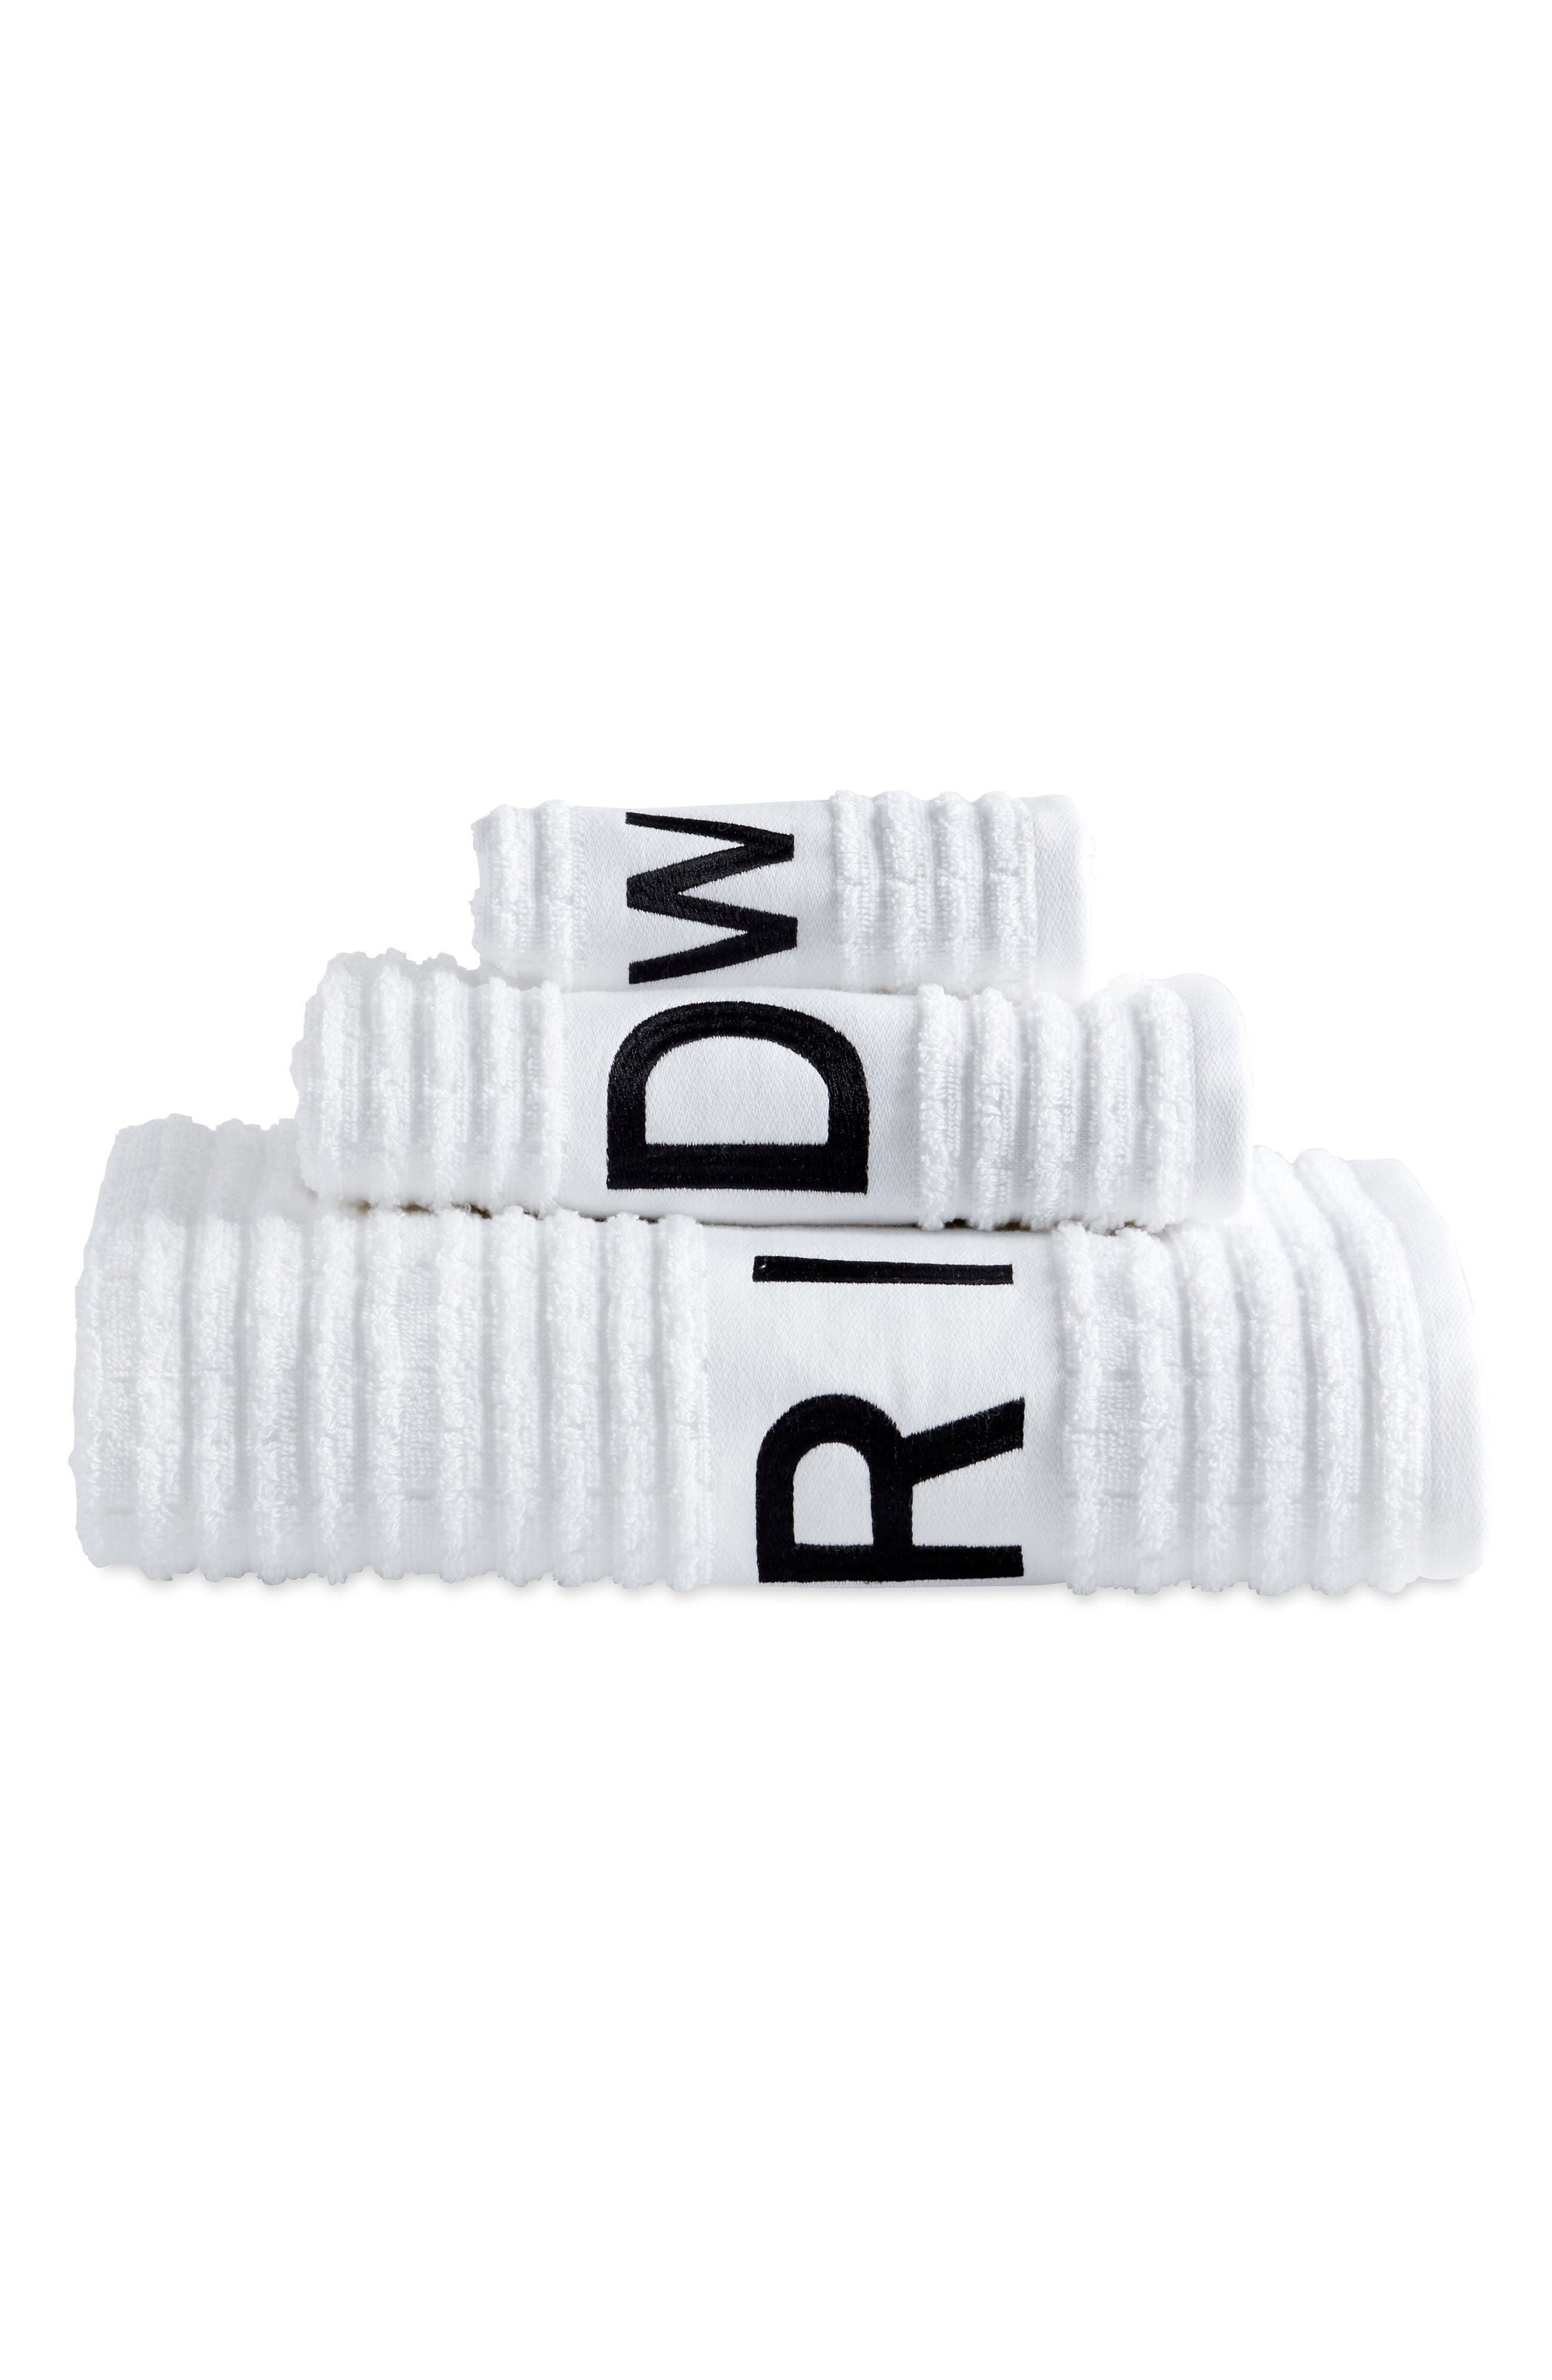 DKNY Towel Collection